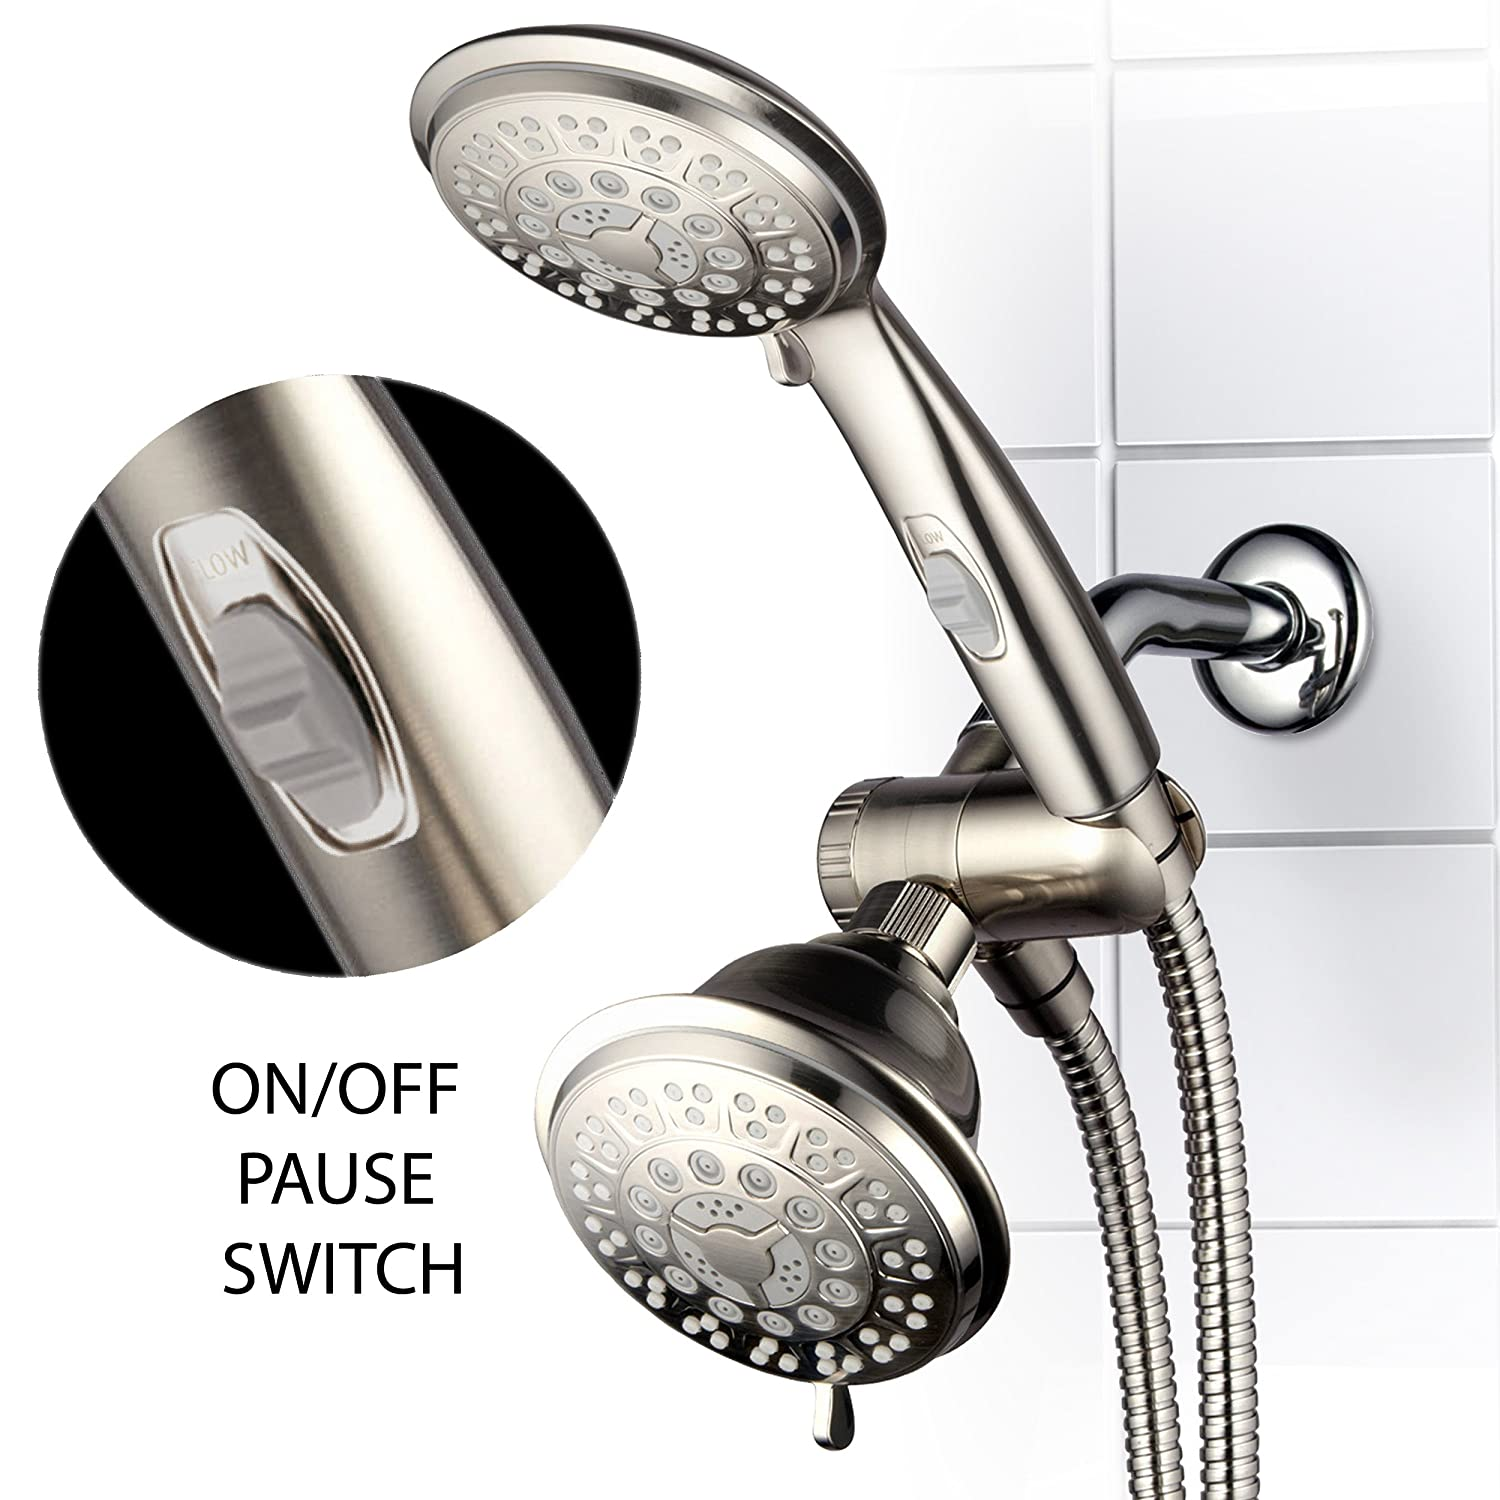 HotelSpa 42-setting Ultra-Luxury 3-way Combo with ON/OFF Pause ...